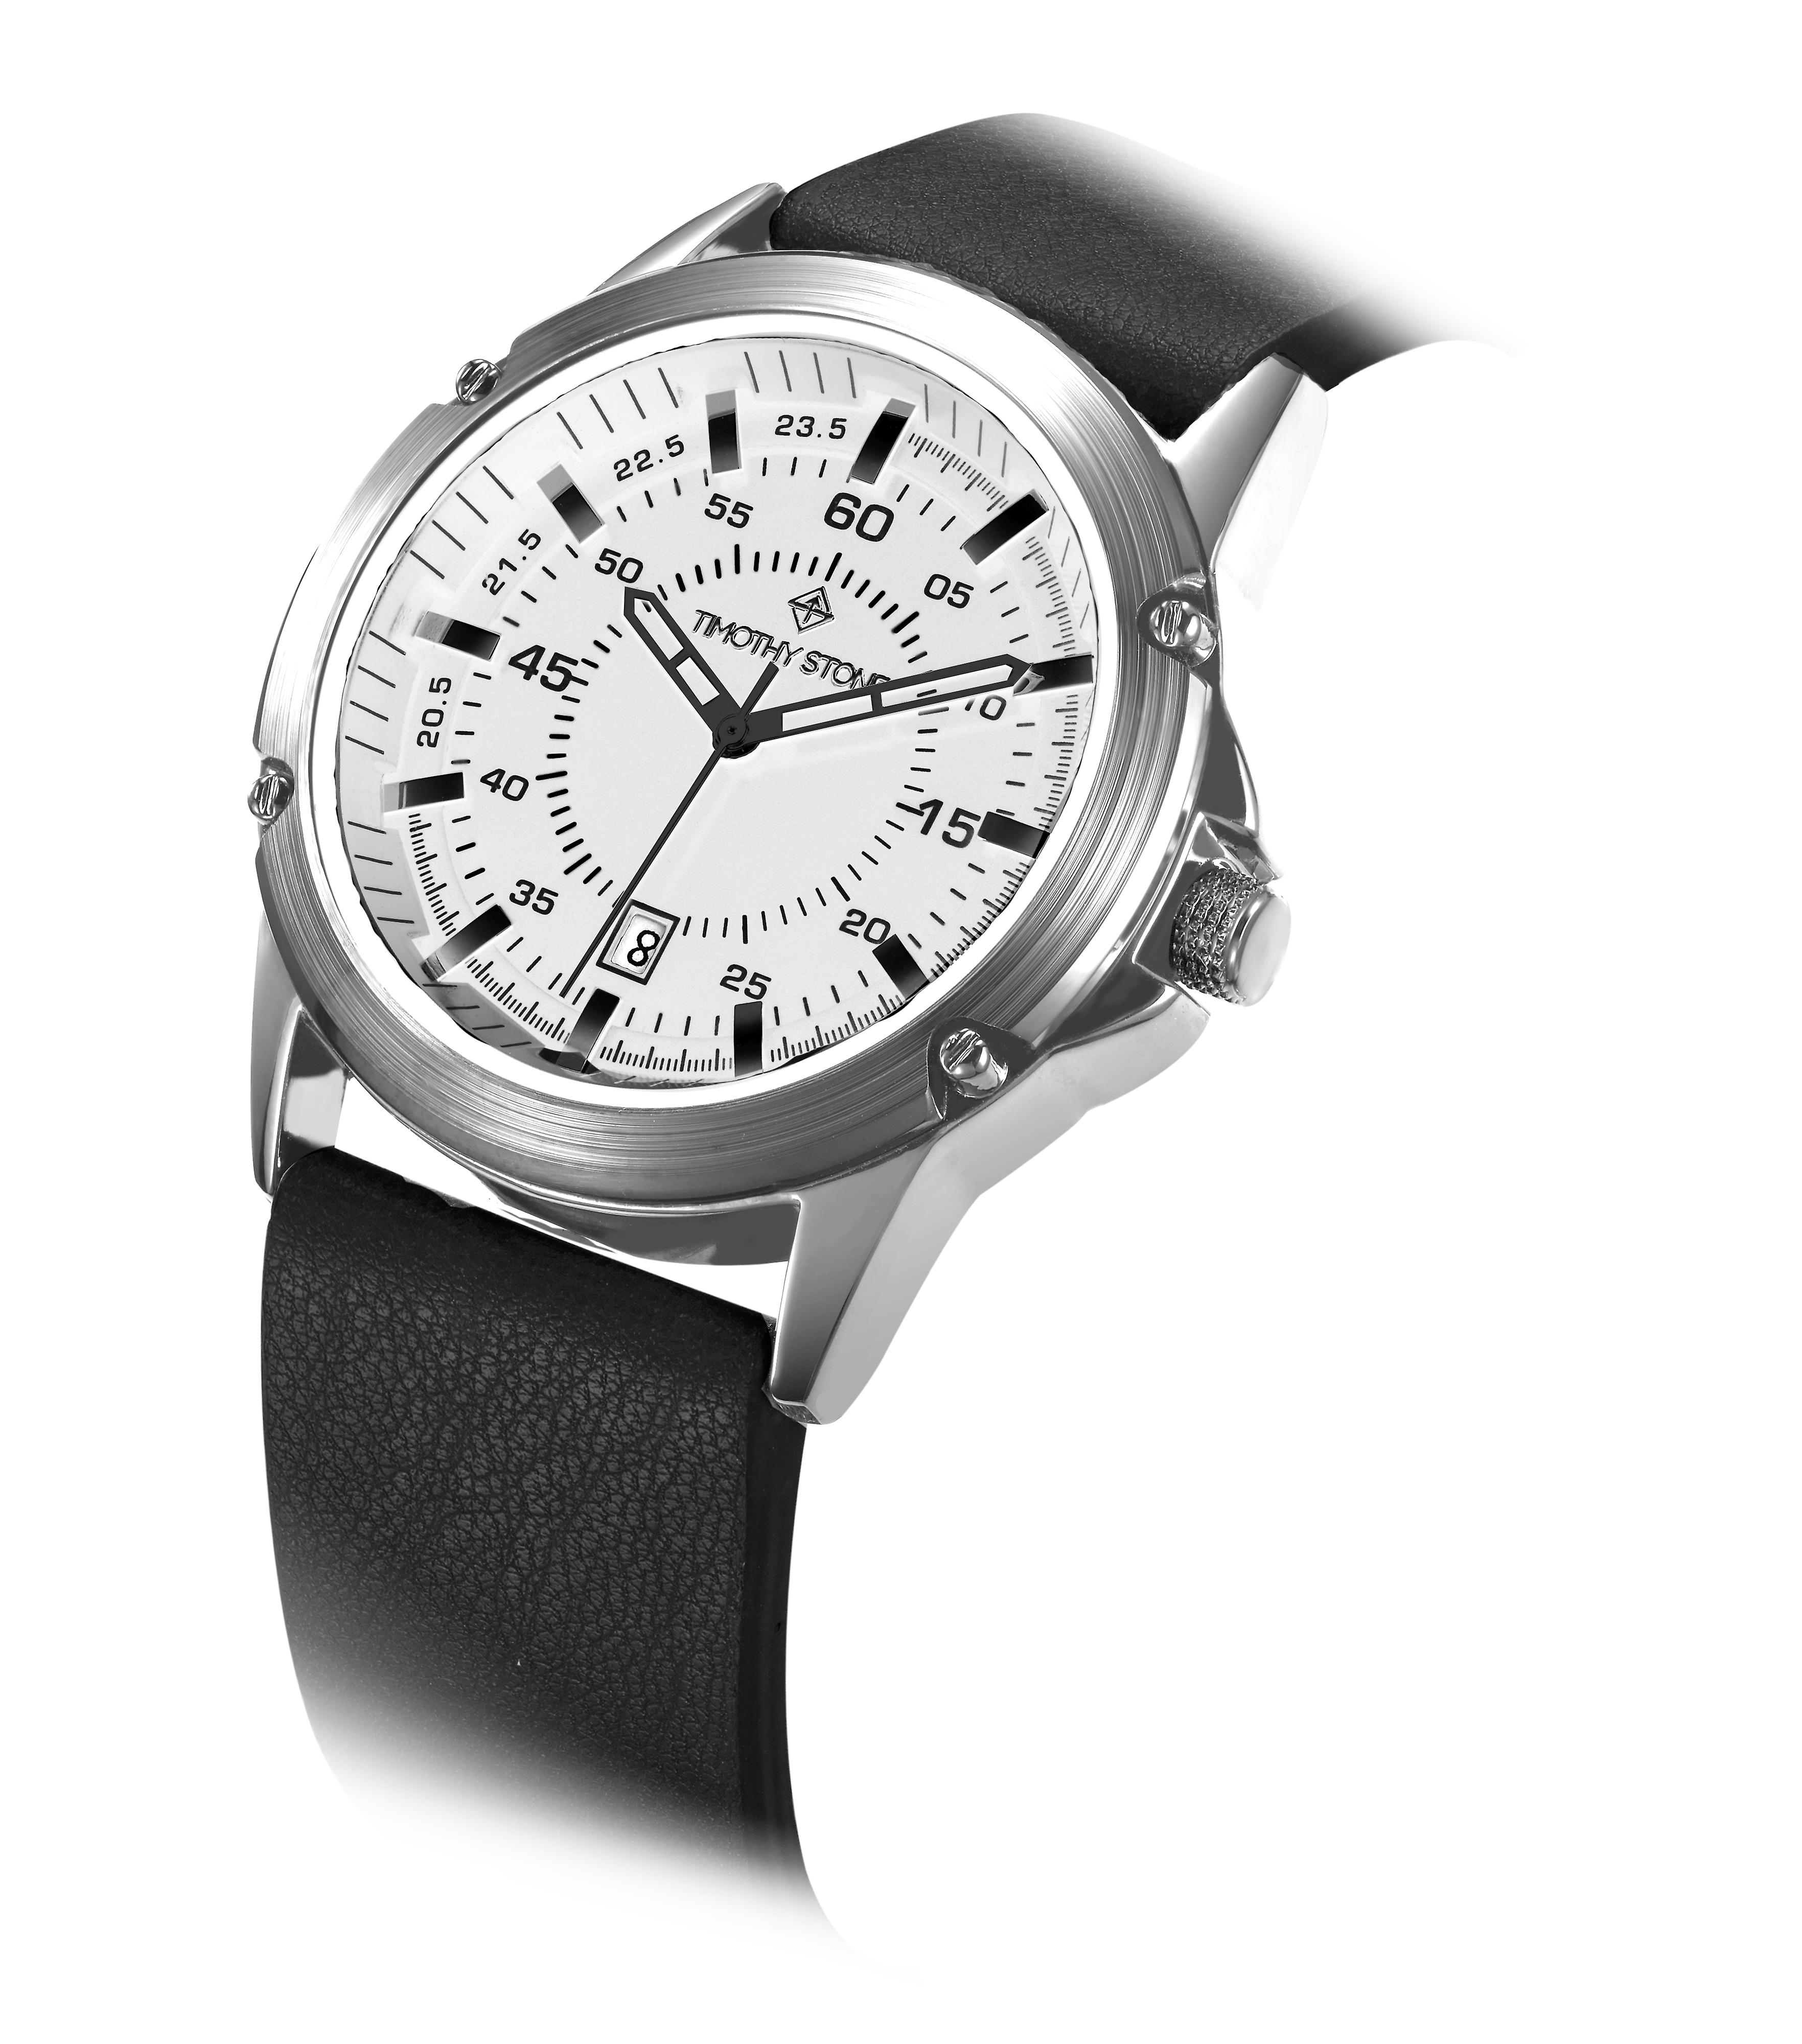 Timothy Stone Men's NORSE Silver and Black Watch